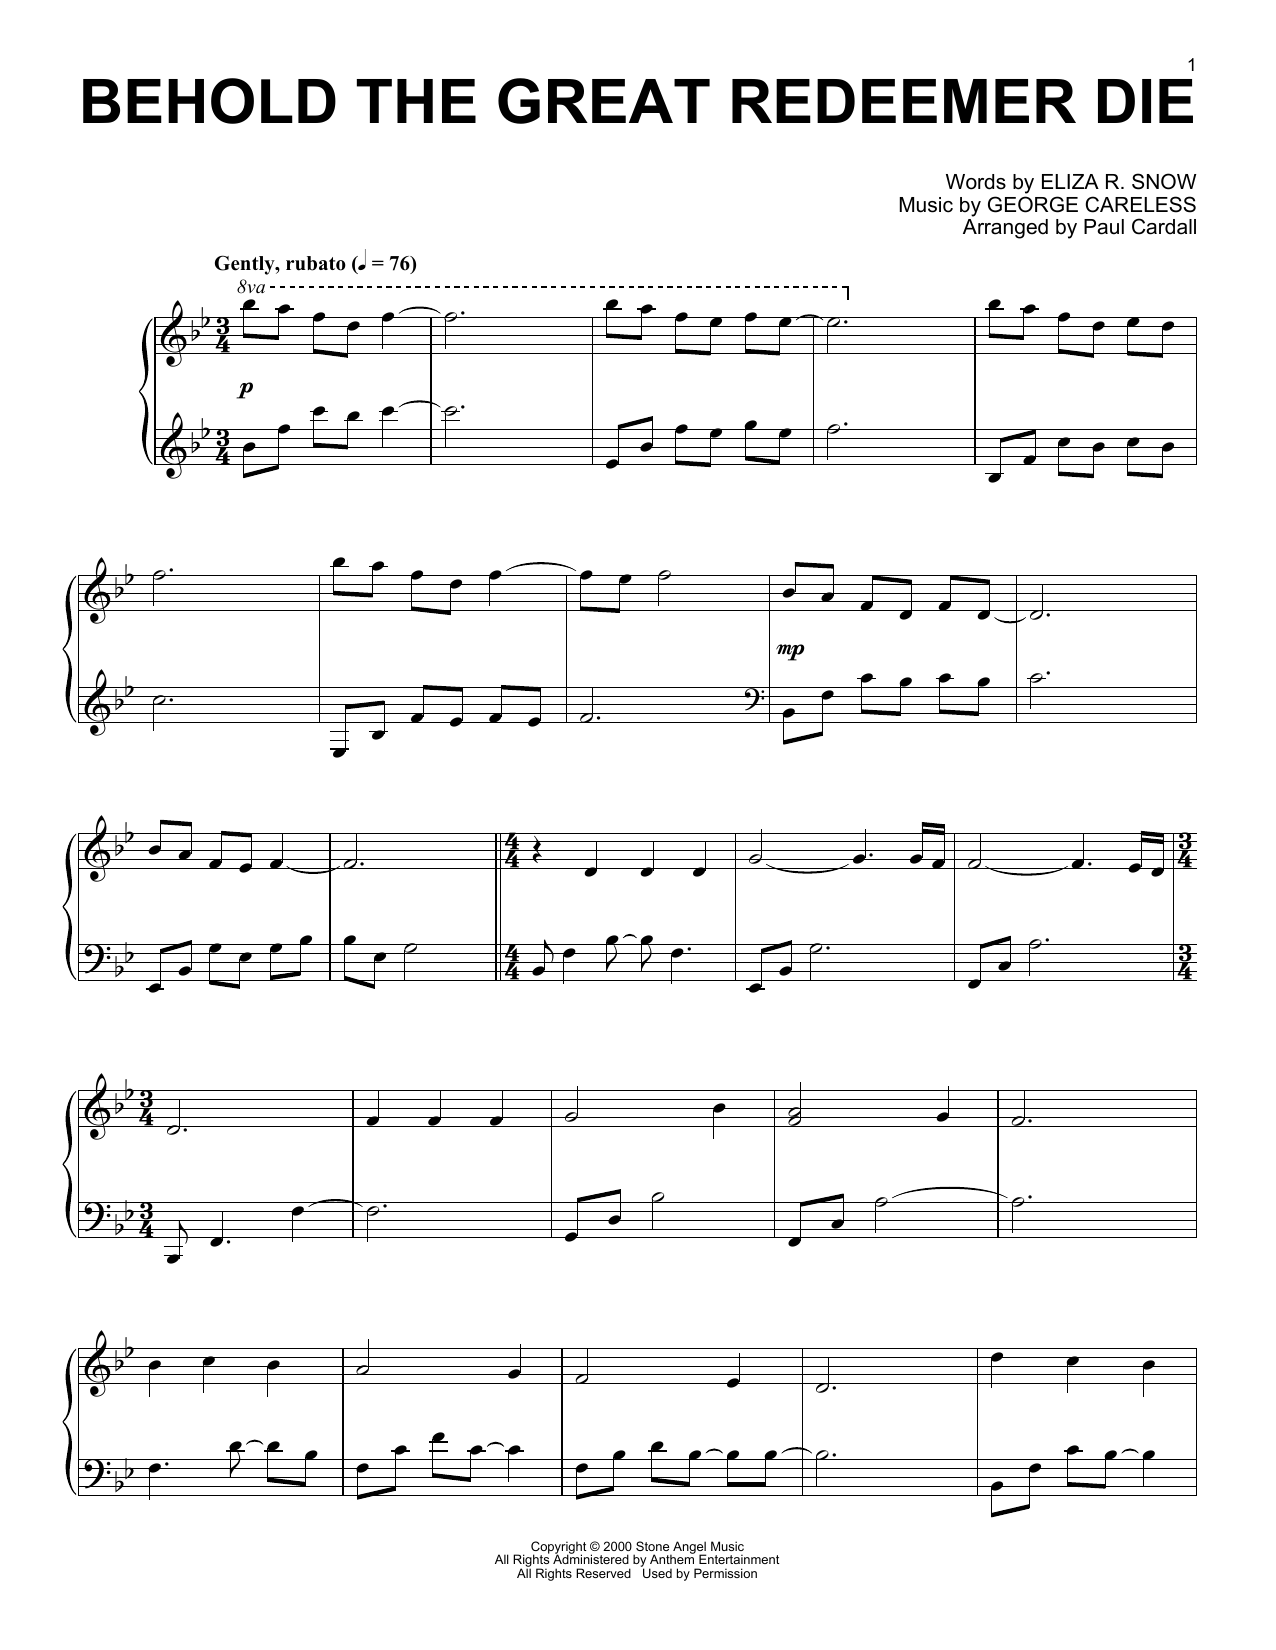 George Careless Behold The Great Redeemer Die (arr. Paul Cardall) sheet music notes and chords. Download Printable PDF.